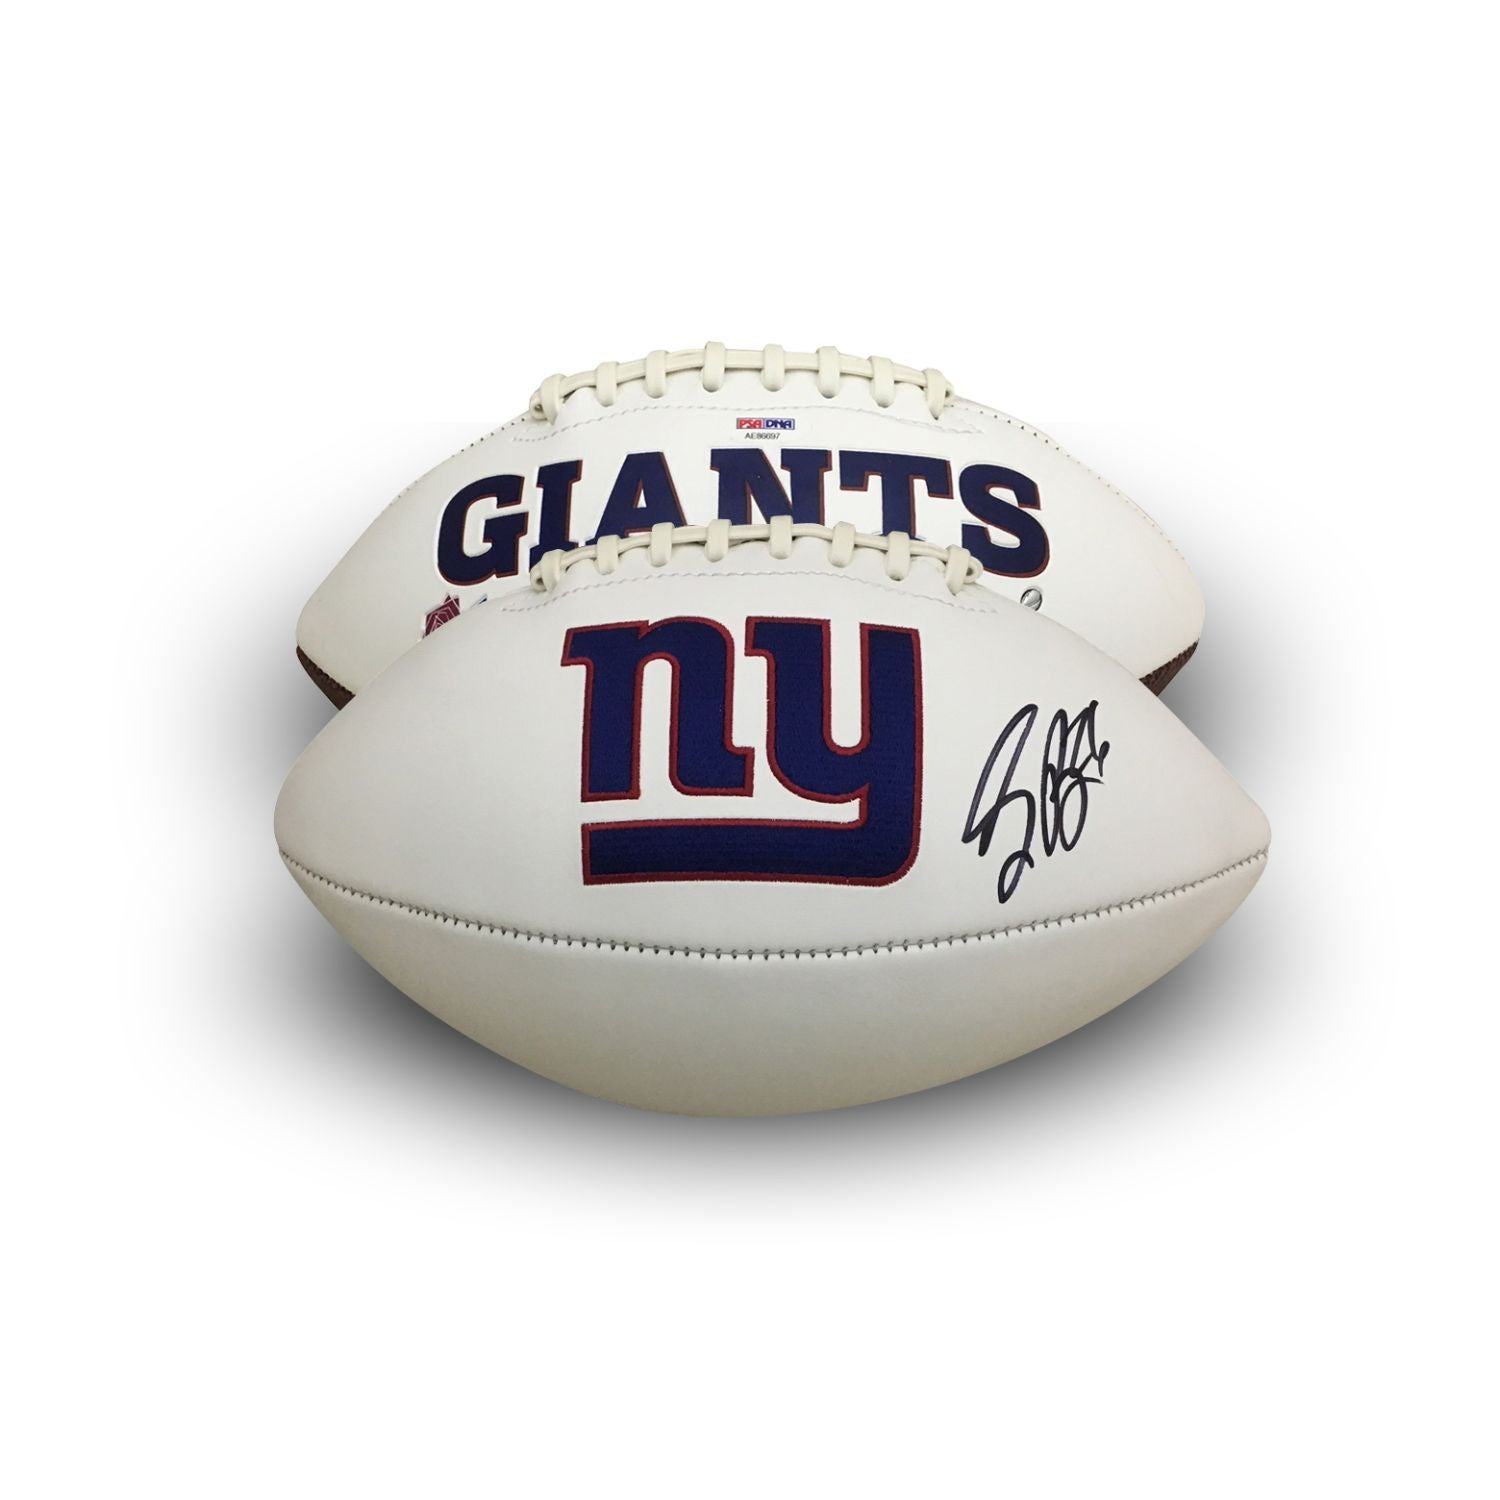 Saquon Barkley Autographed New York Giants NFL Signed Logo Football PSA DNA COA-Powers Sports Memorabilia